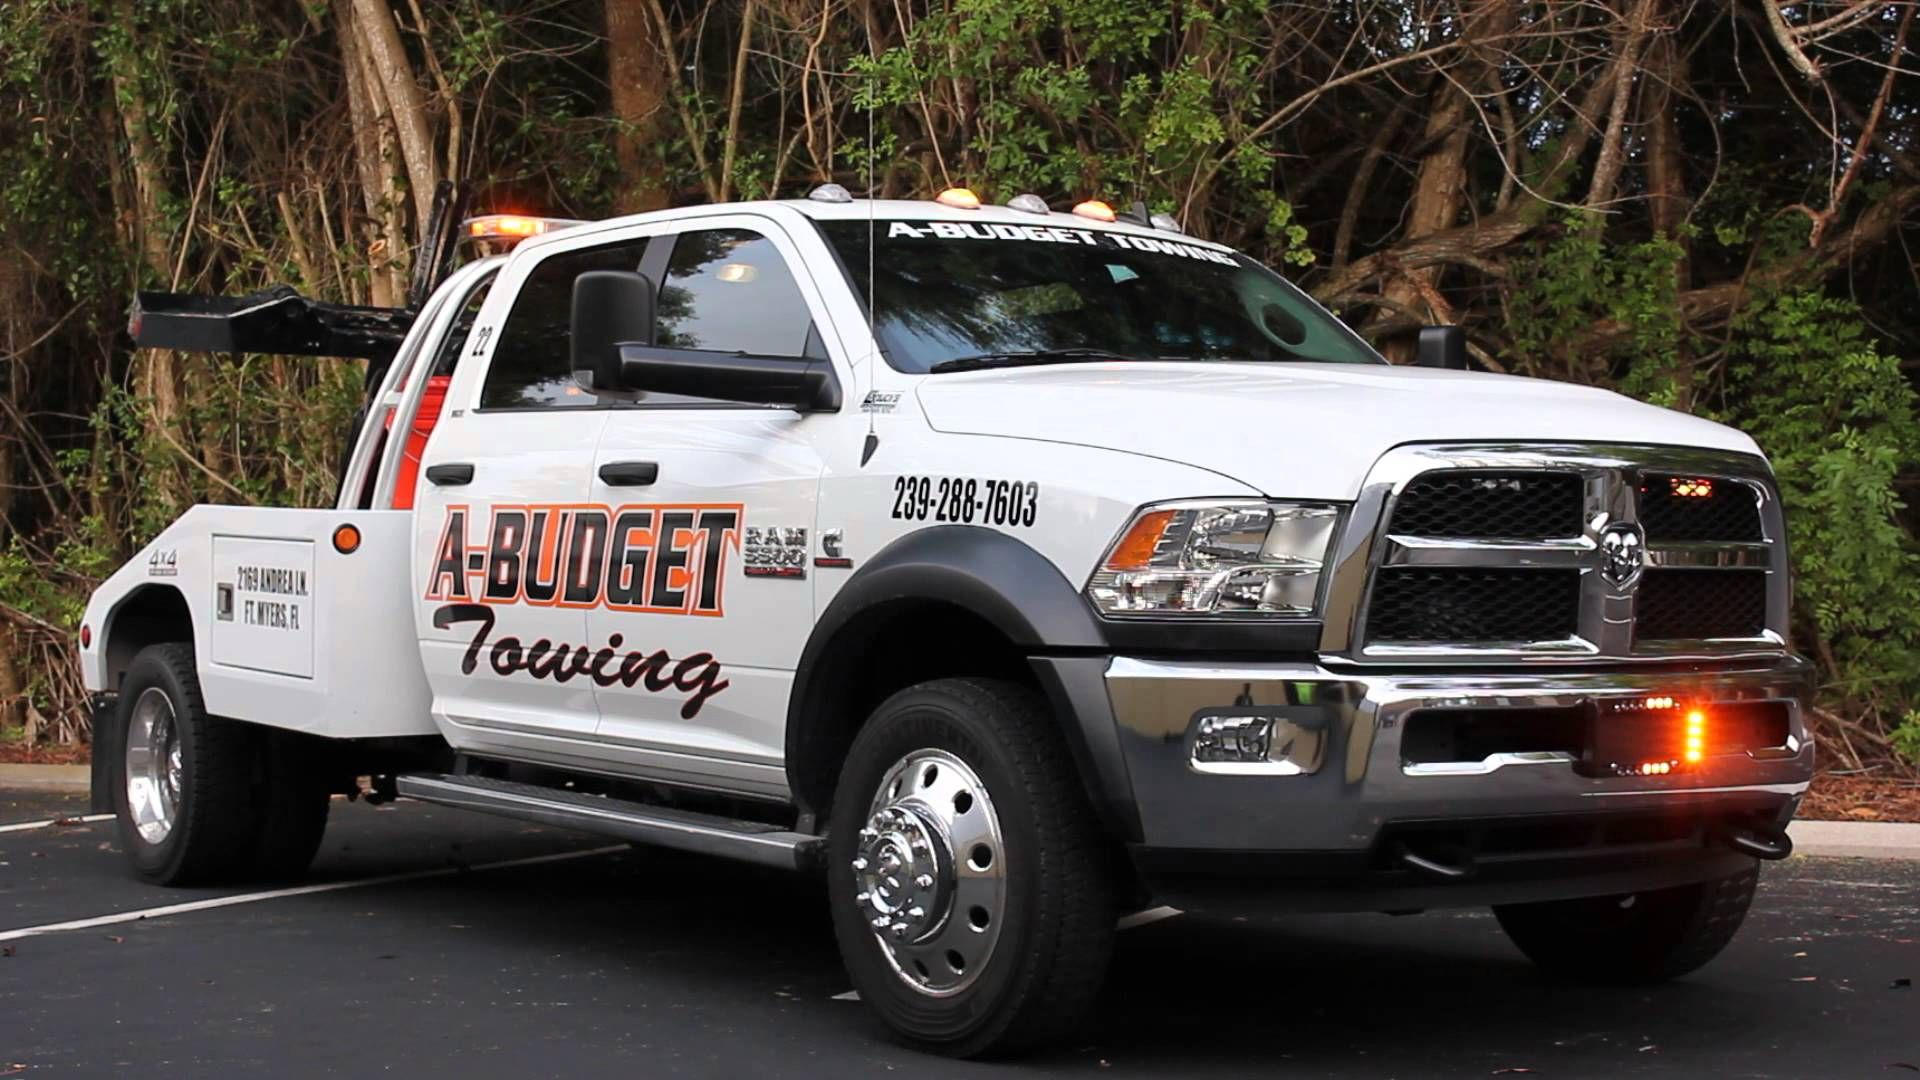 A Budget Towing Dodge Ram Tow Truck Lighting Package You